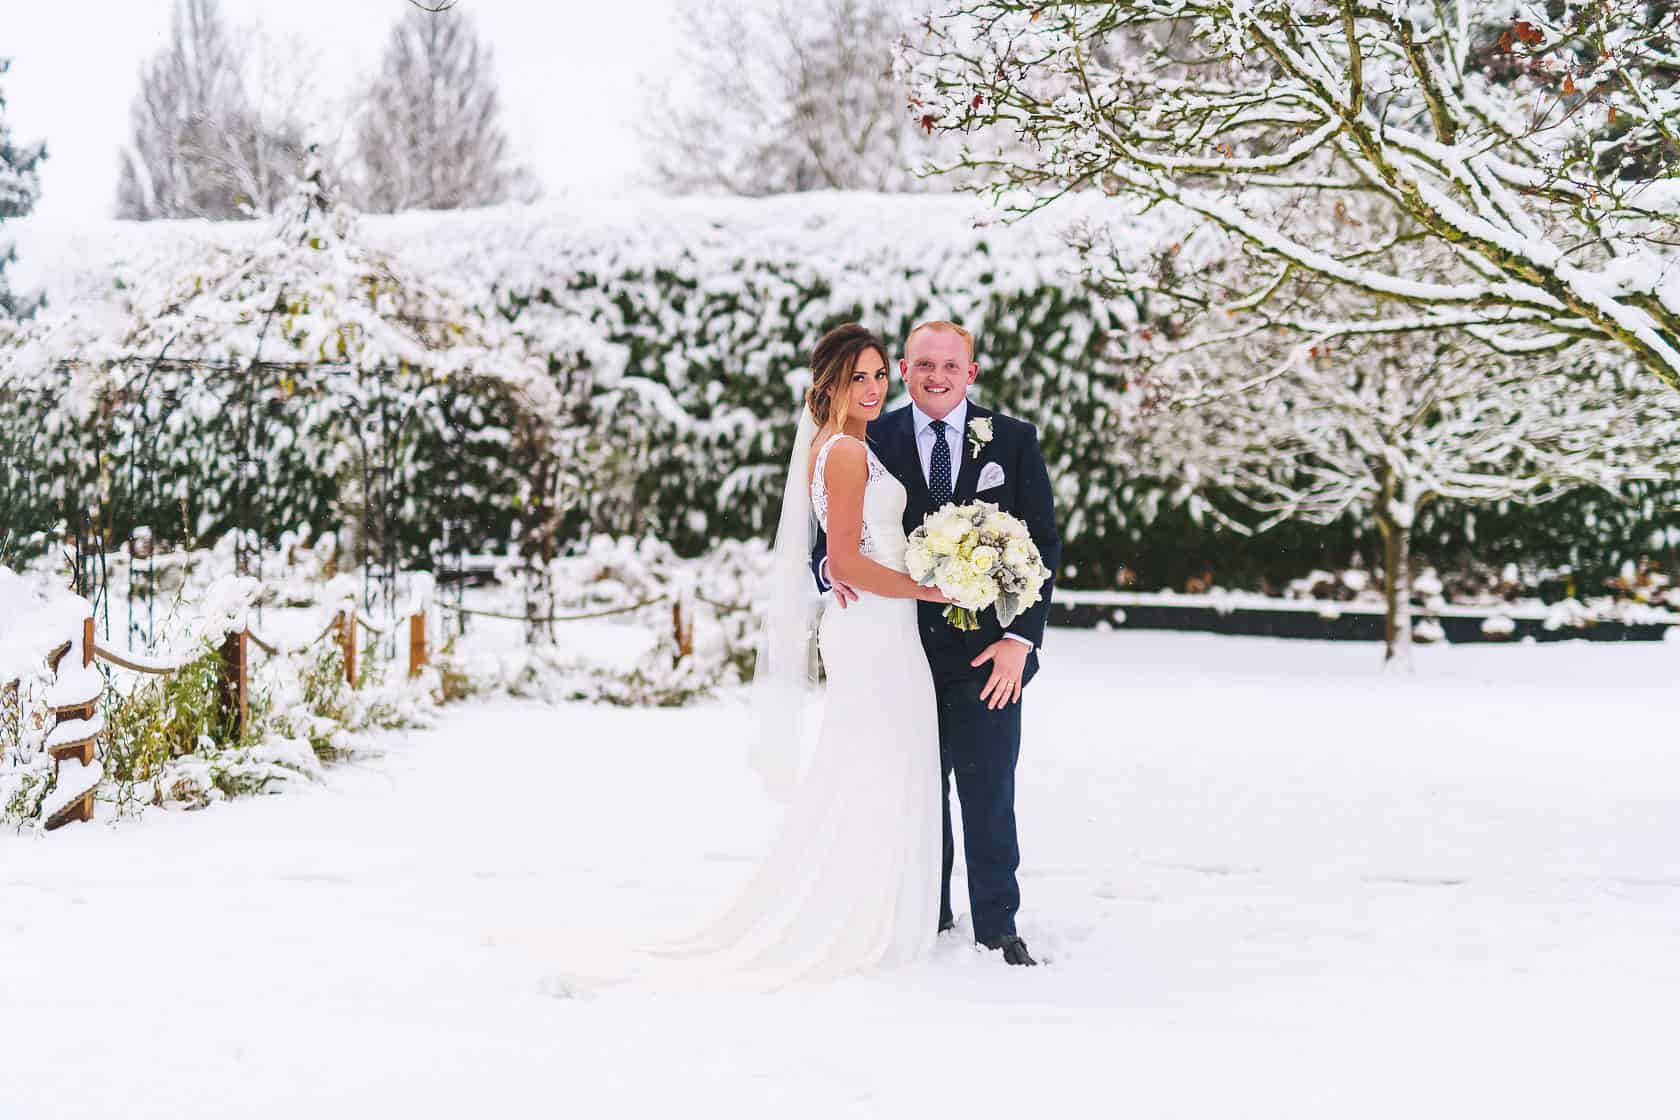 Demi and Louis standing in the Walled Garden at Gaynes Park, after it has been snowing